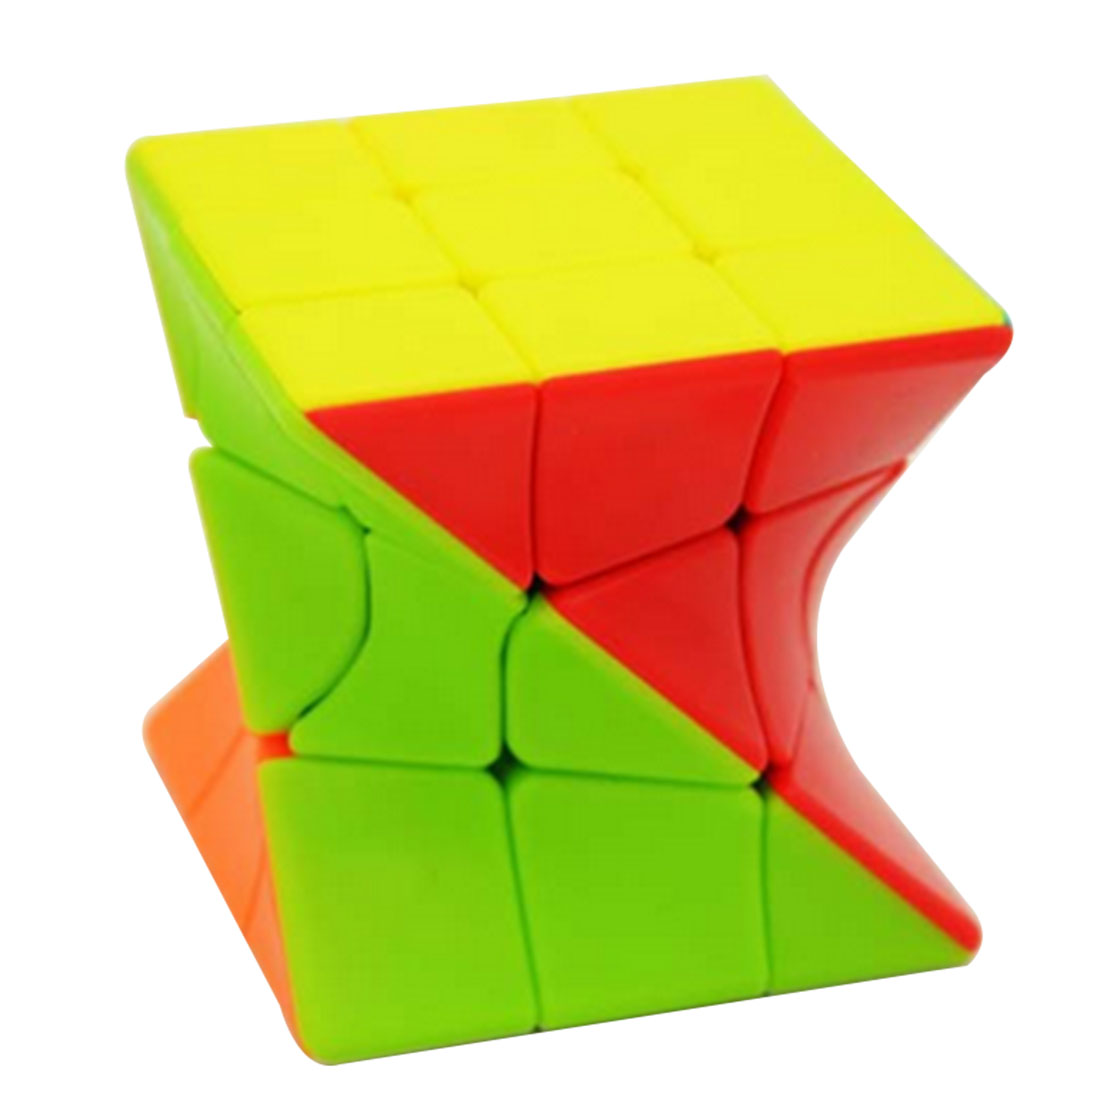 Fangge 3x3 Torsion Magic Cube Coloful Twisted Cube Puzzle Toy for Challange велосипед cube stereo 160 hpa race 27 5 2015